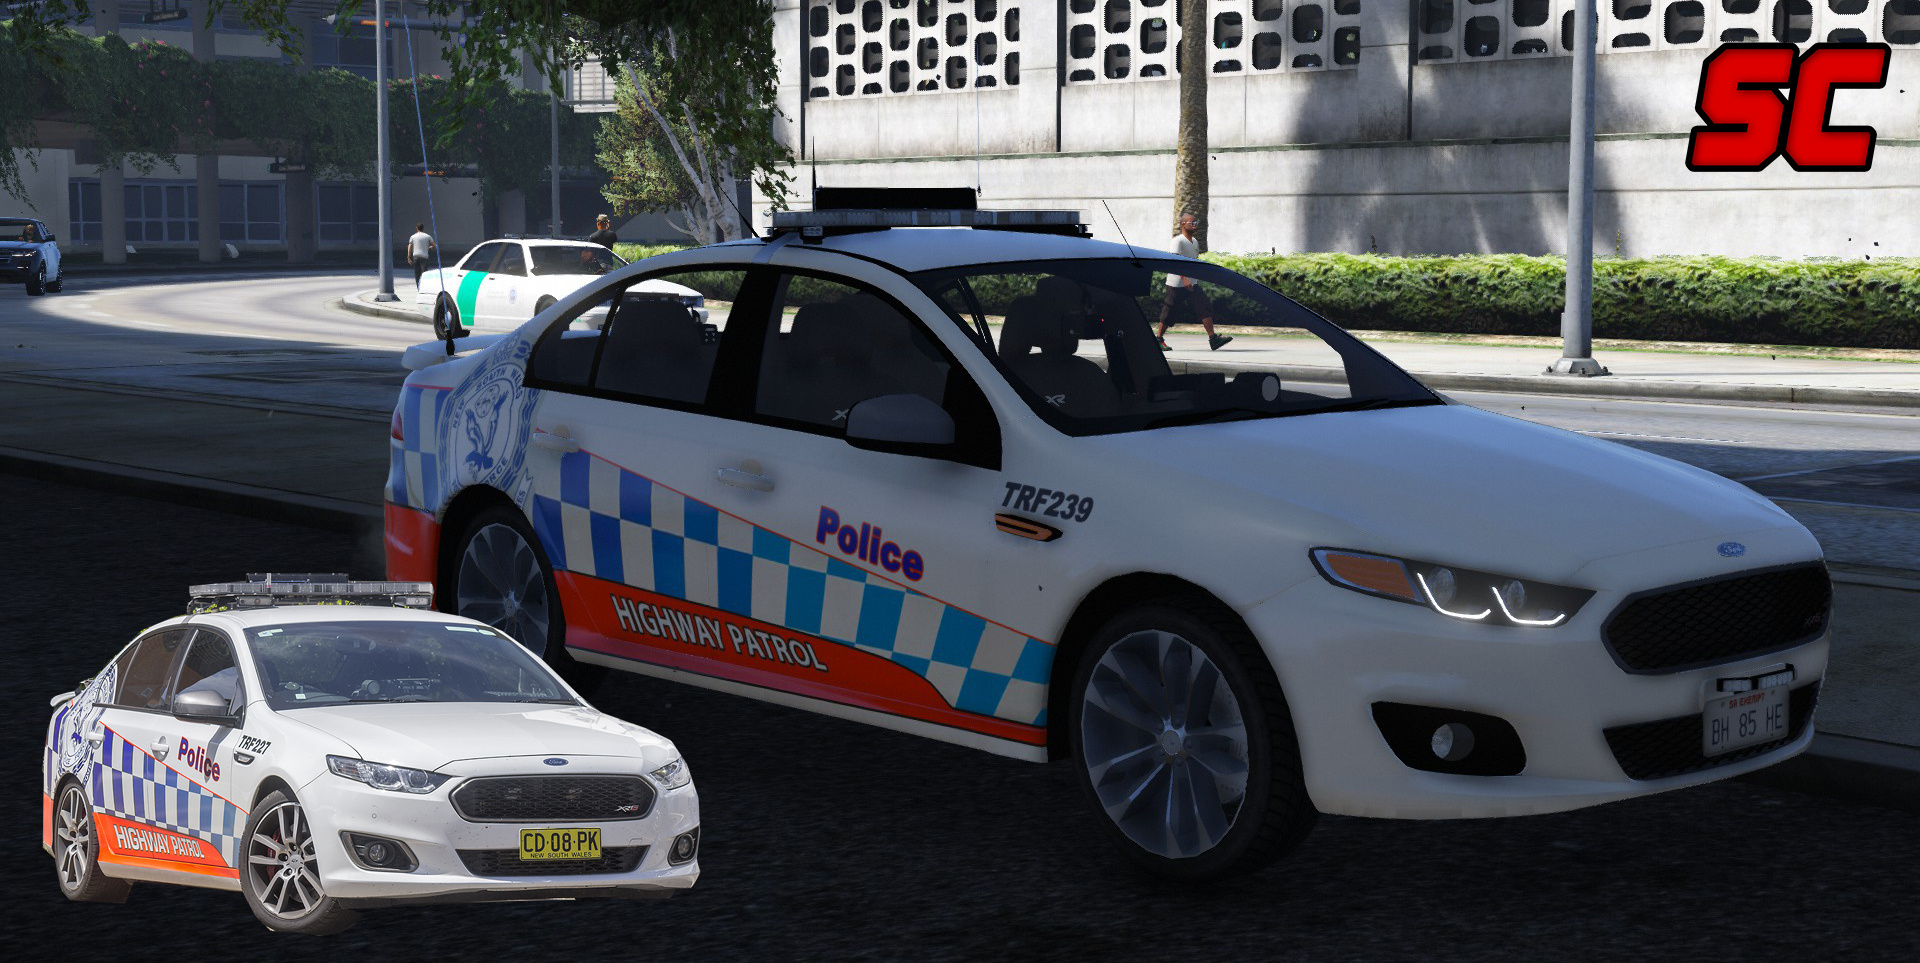 NSW Police Skin Pack for Ford Falcon FGX - GTA5-Mods com